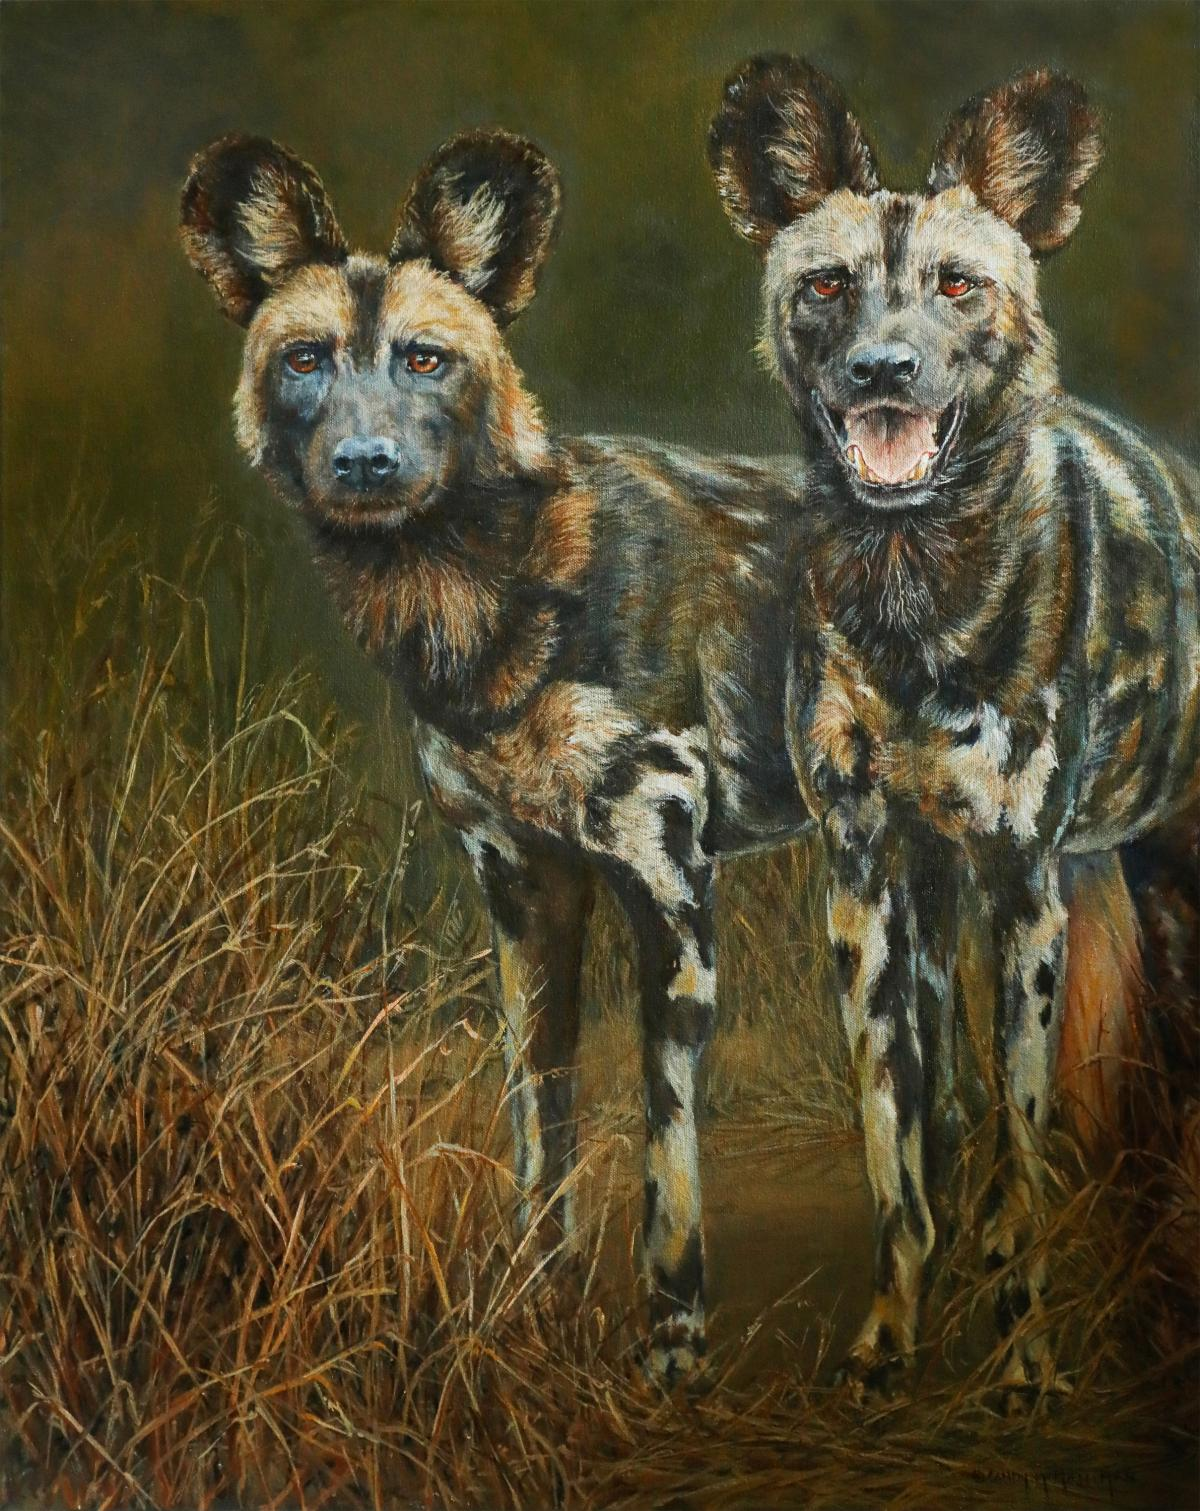 Lycaon pictus - Still Endangered | Wallhanging by Candy McManiman | Artists for Conservation 2020